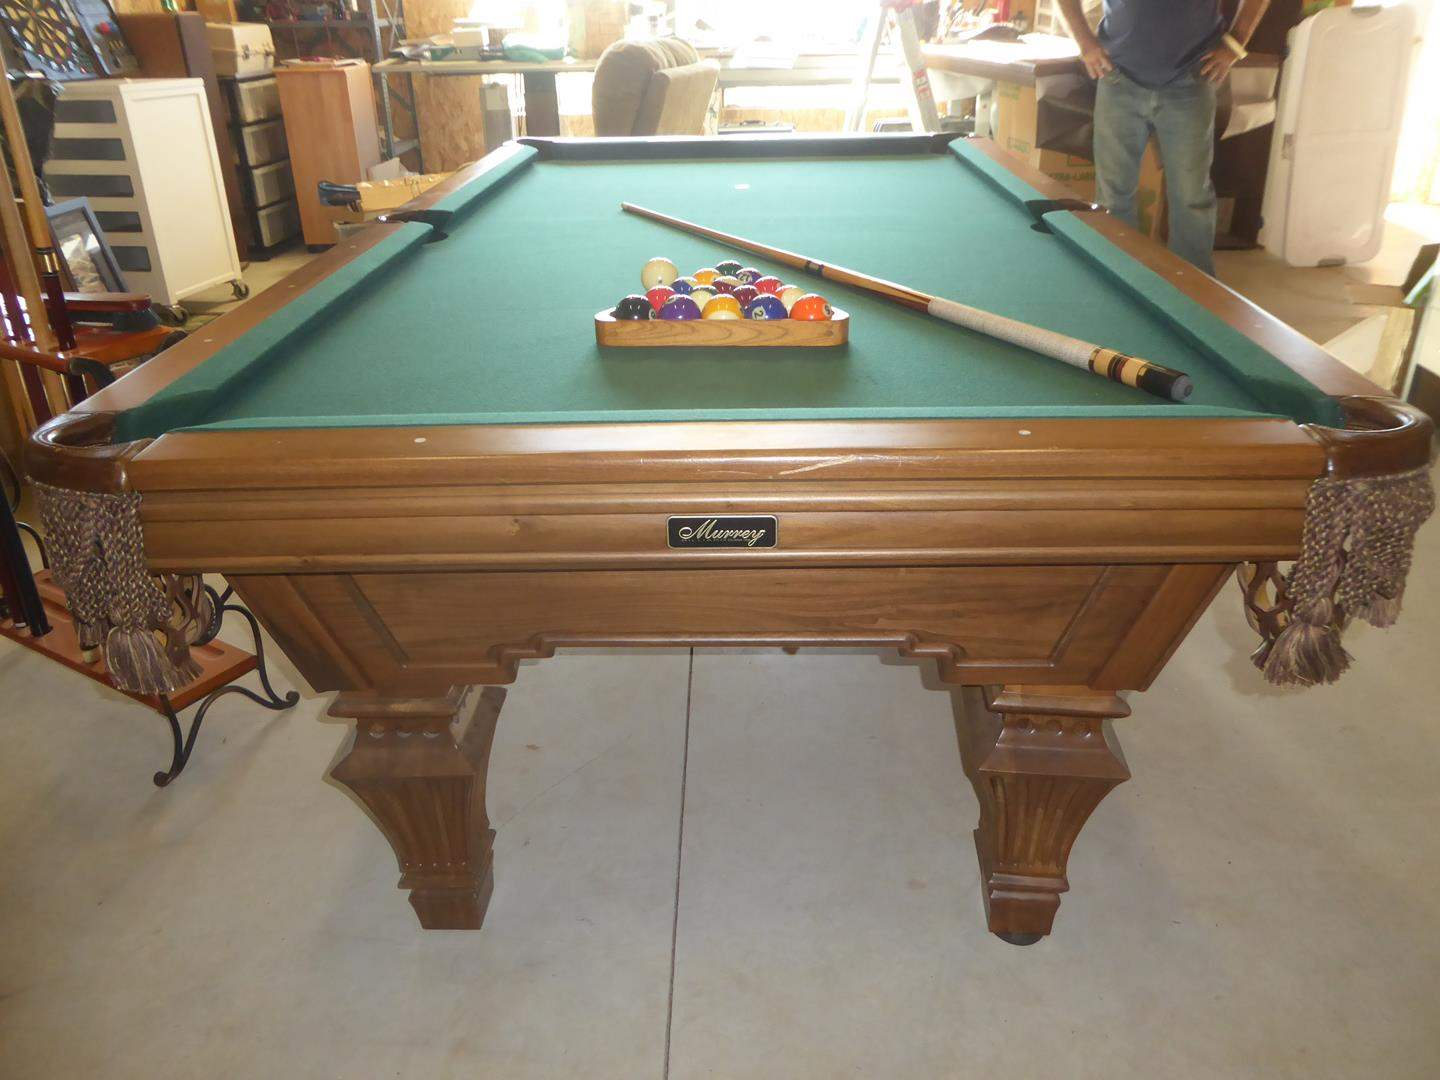 Lot # 234 - Quality 'Murrey' Billiards Pool Table w/Leather Pockets, Wood Frame, Pool Cues & Pool Cue Rack (main image)